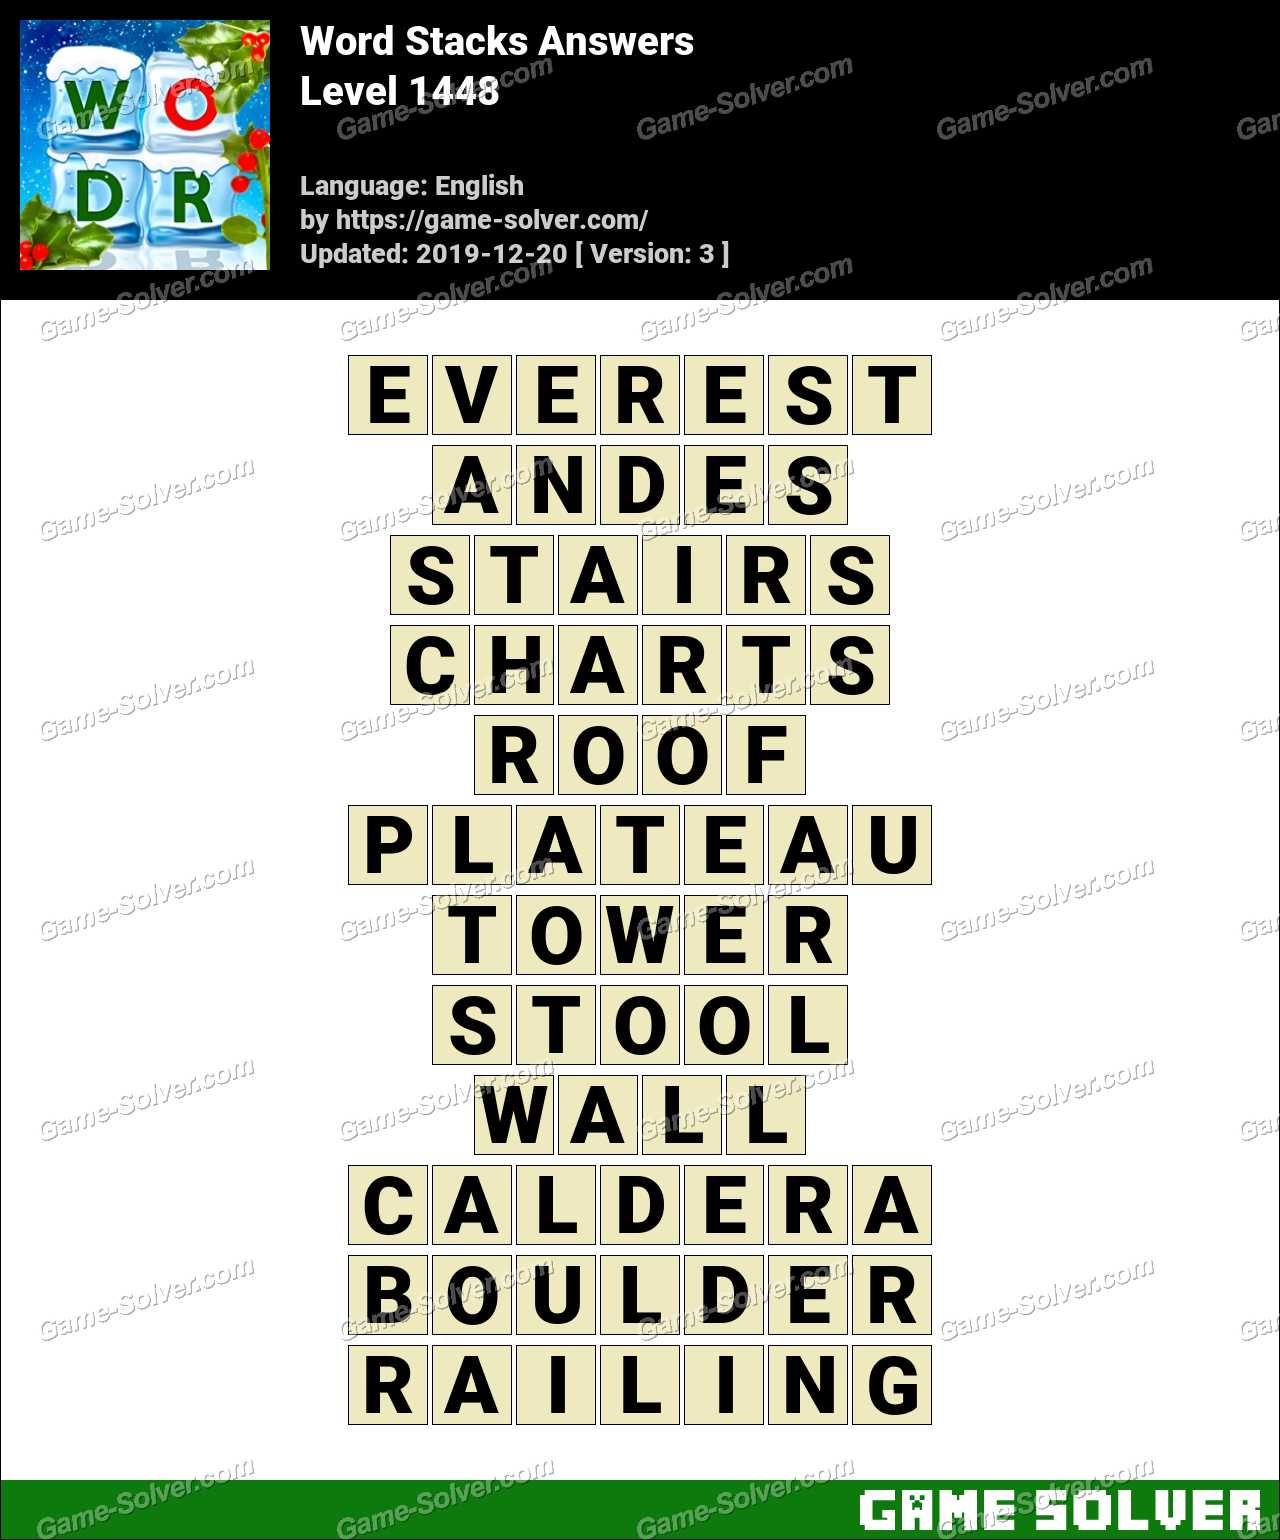 Word Stacks Level 1448 Answers